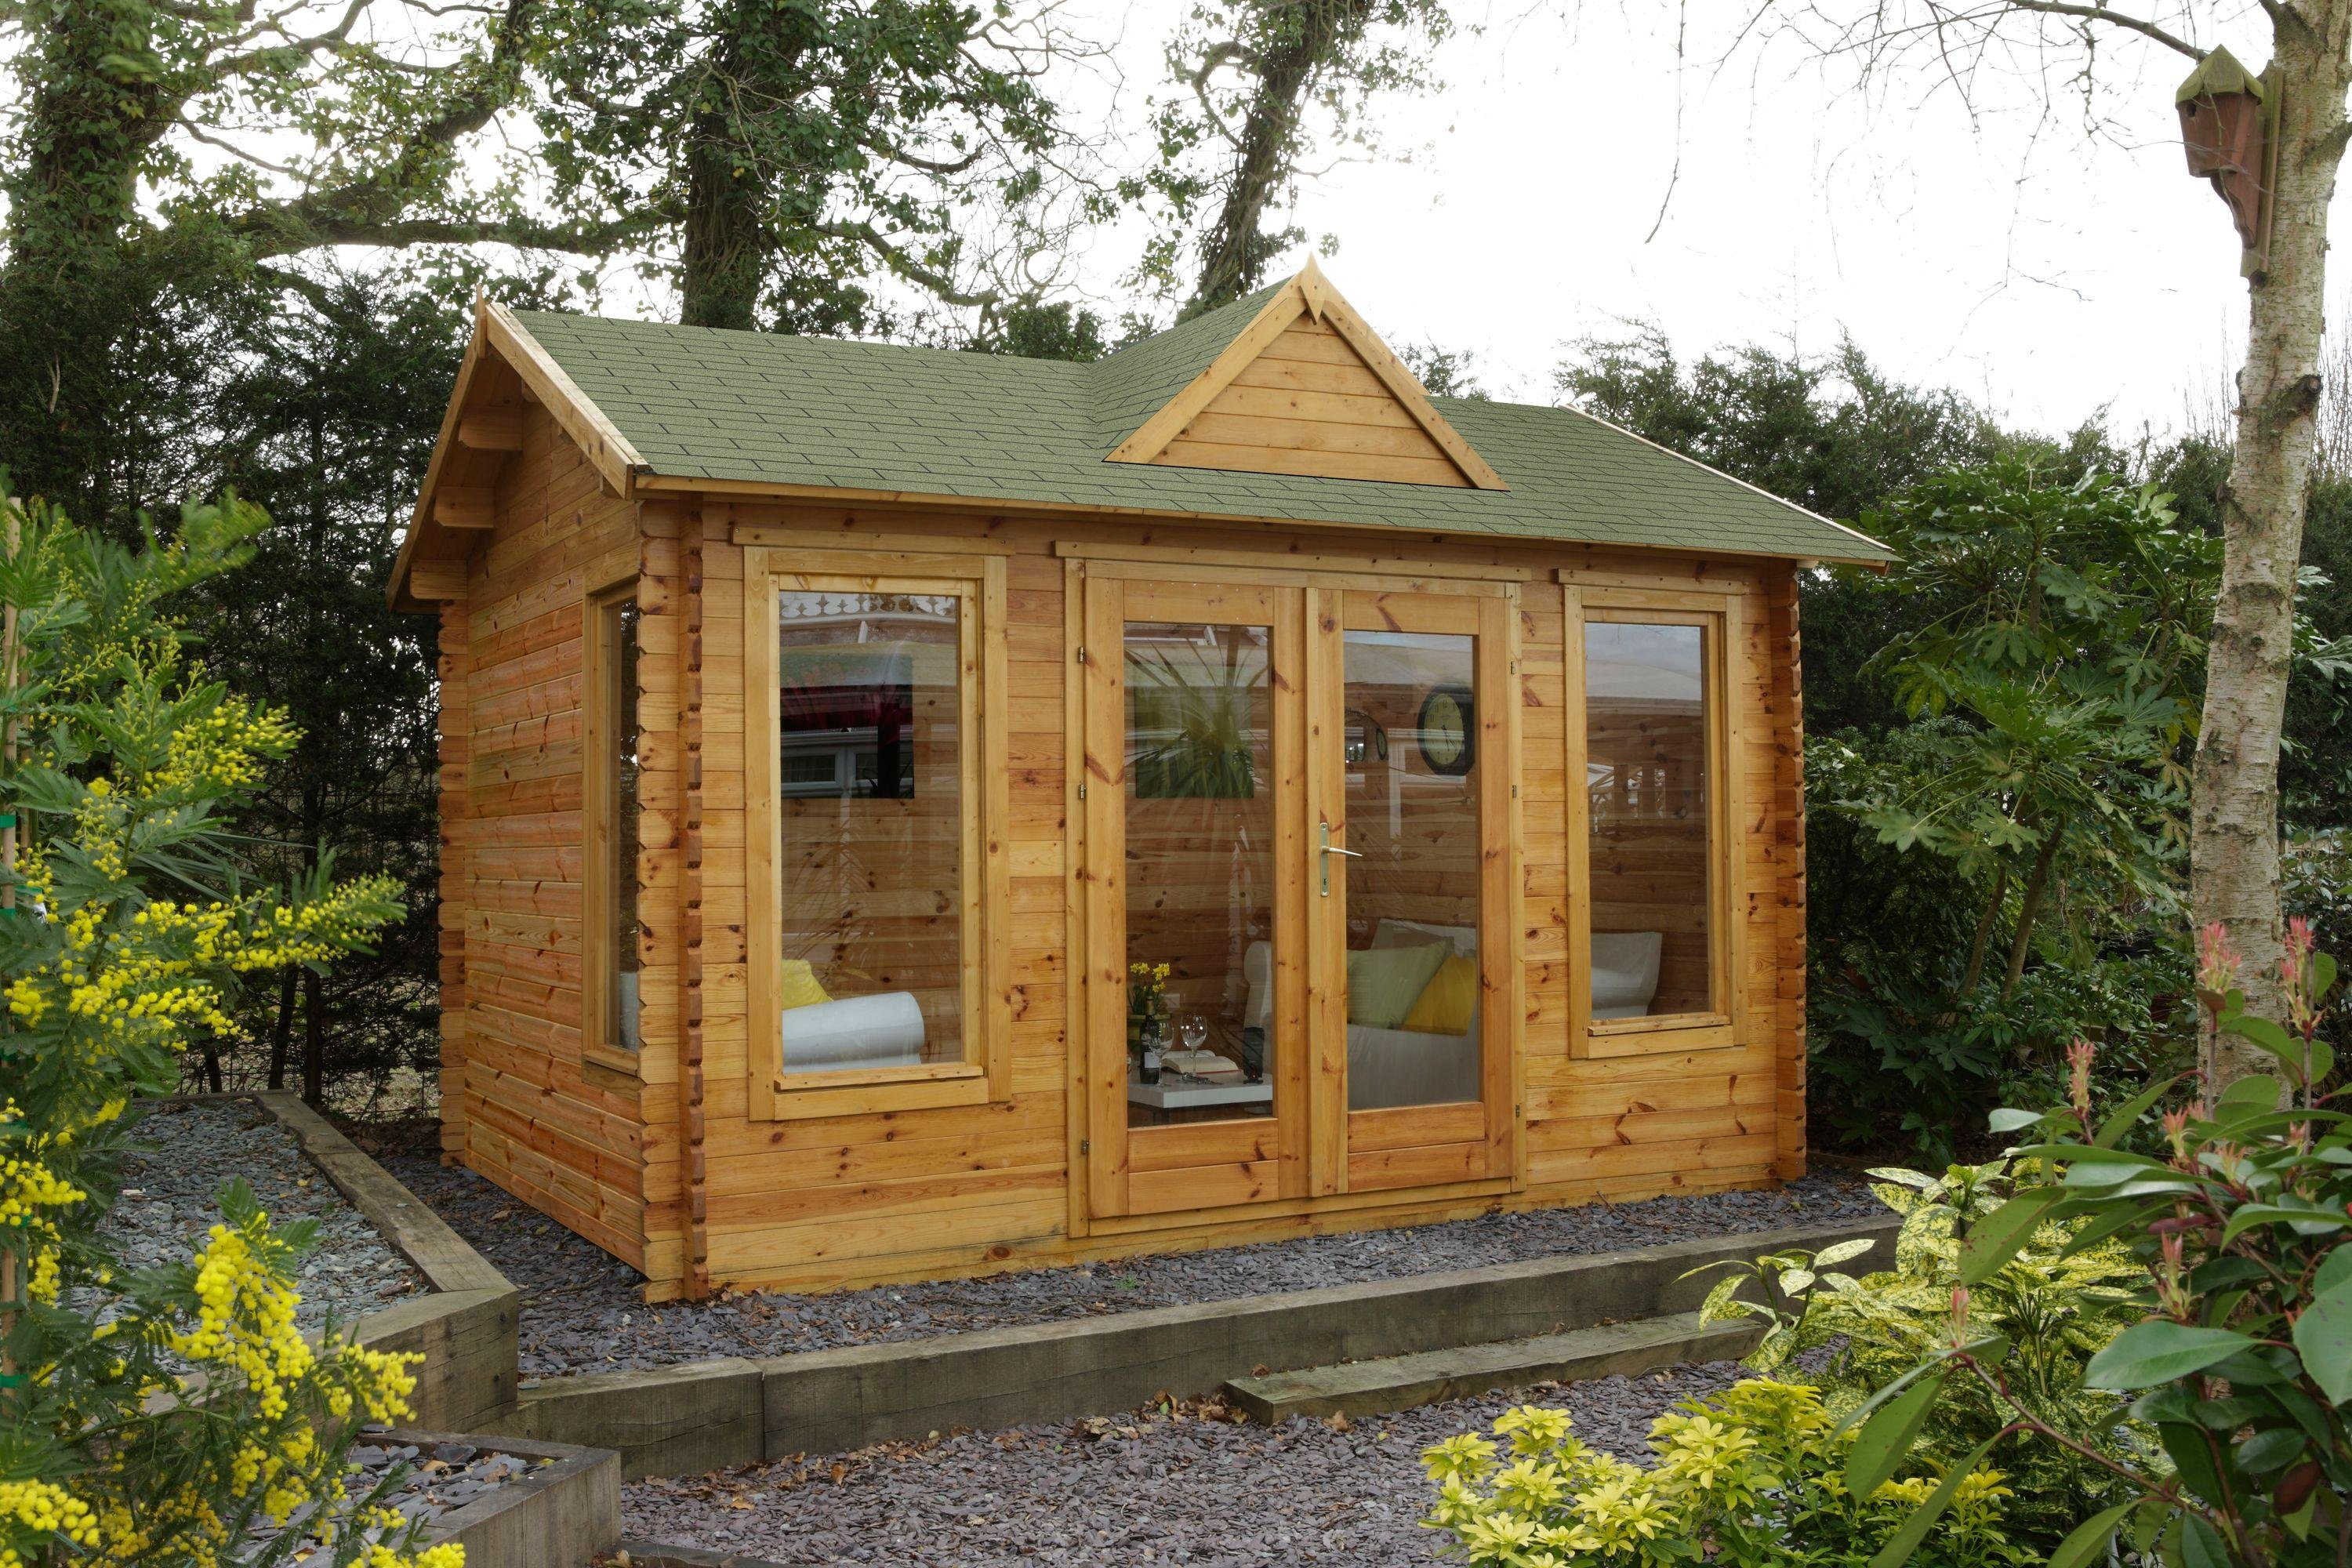 Forest - Alderley Wooden Log Cabin - 14 x 10ft